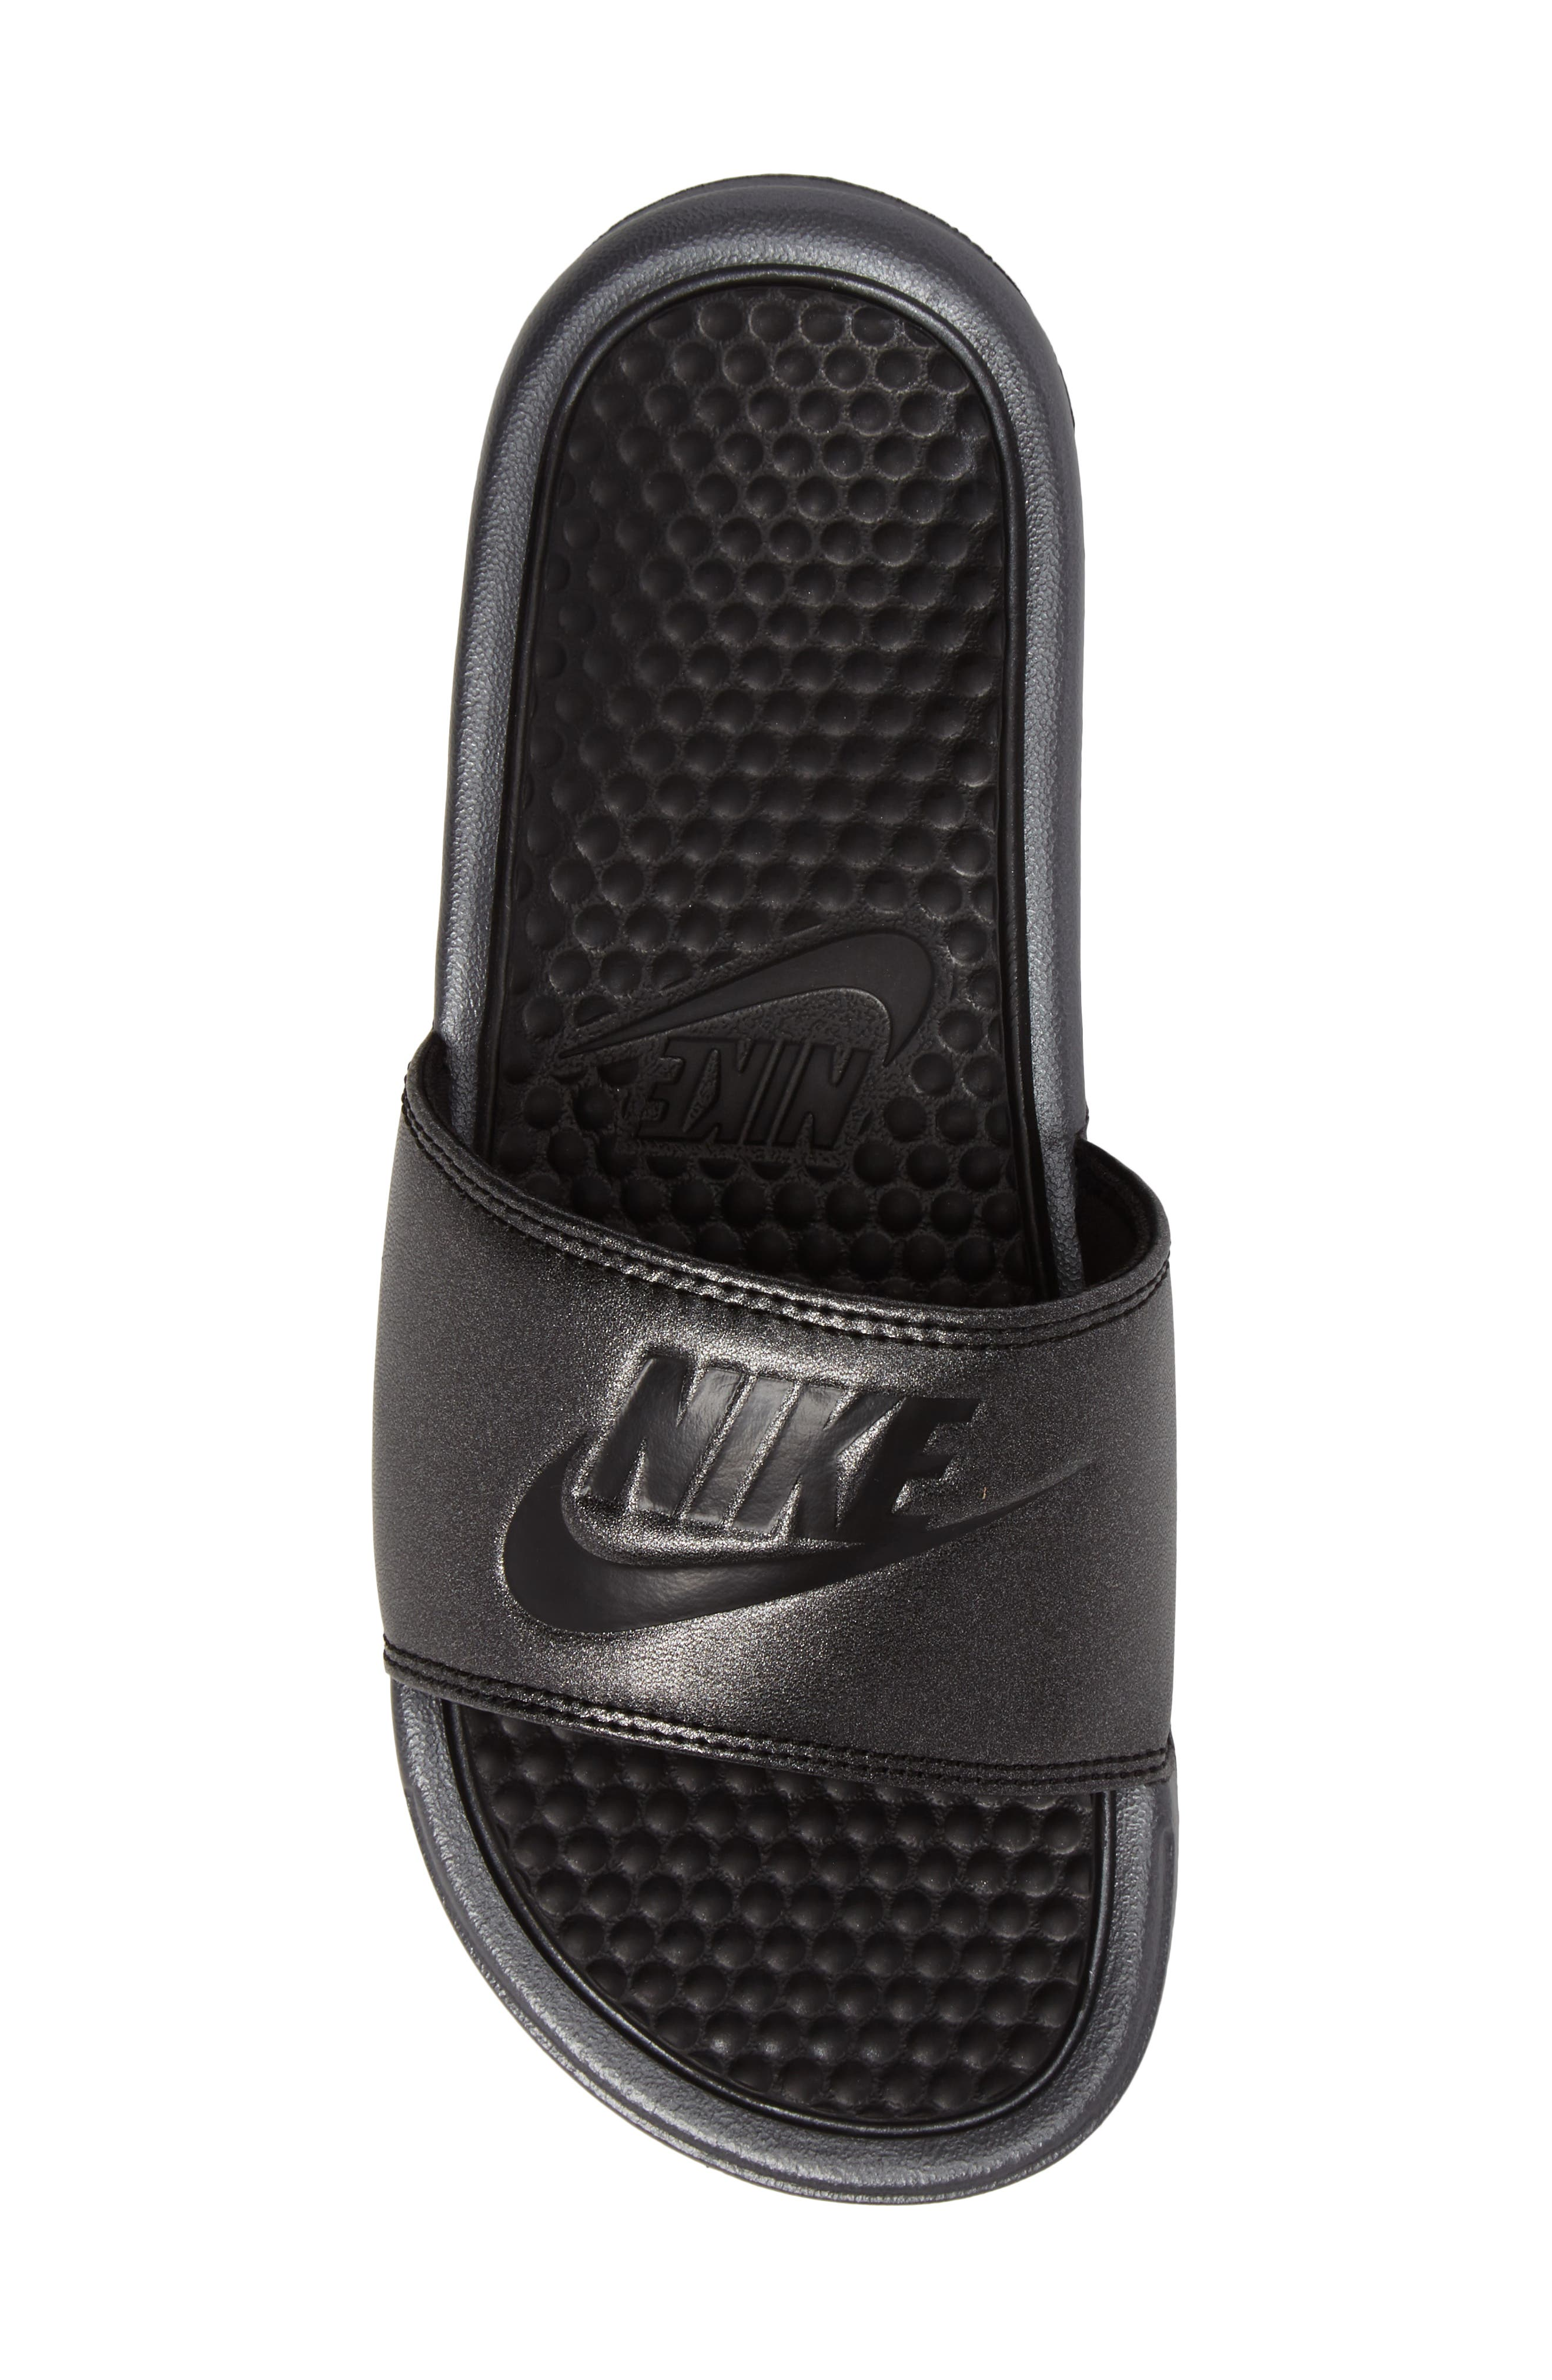 Benassi Slide Sandal,                             Alternate thumbnail 5, color,                             001